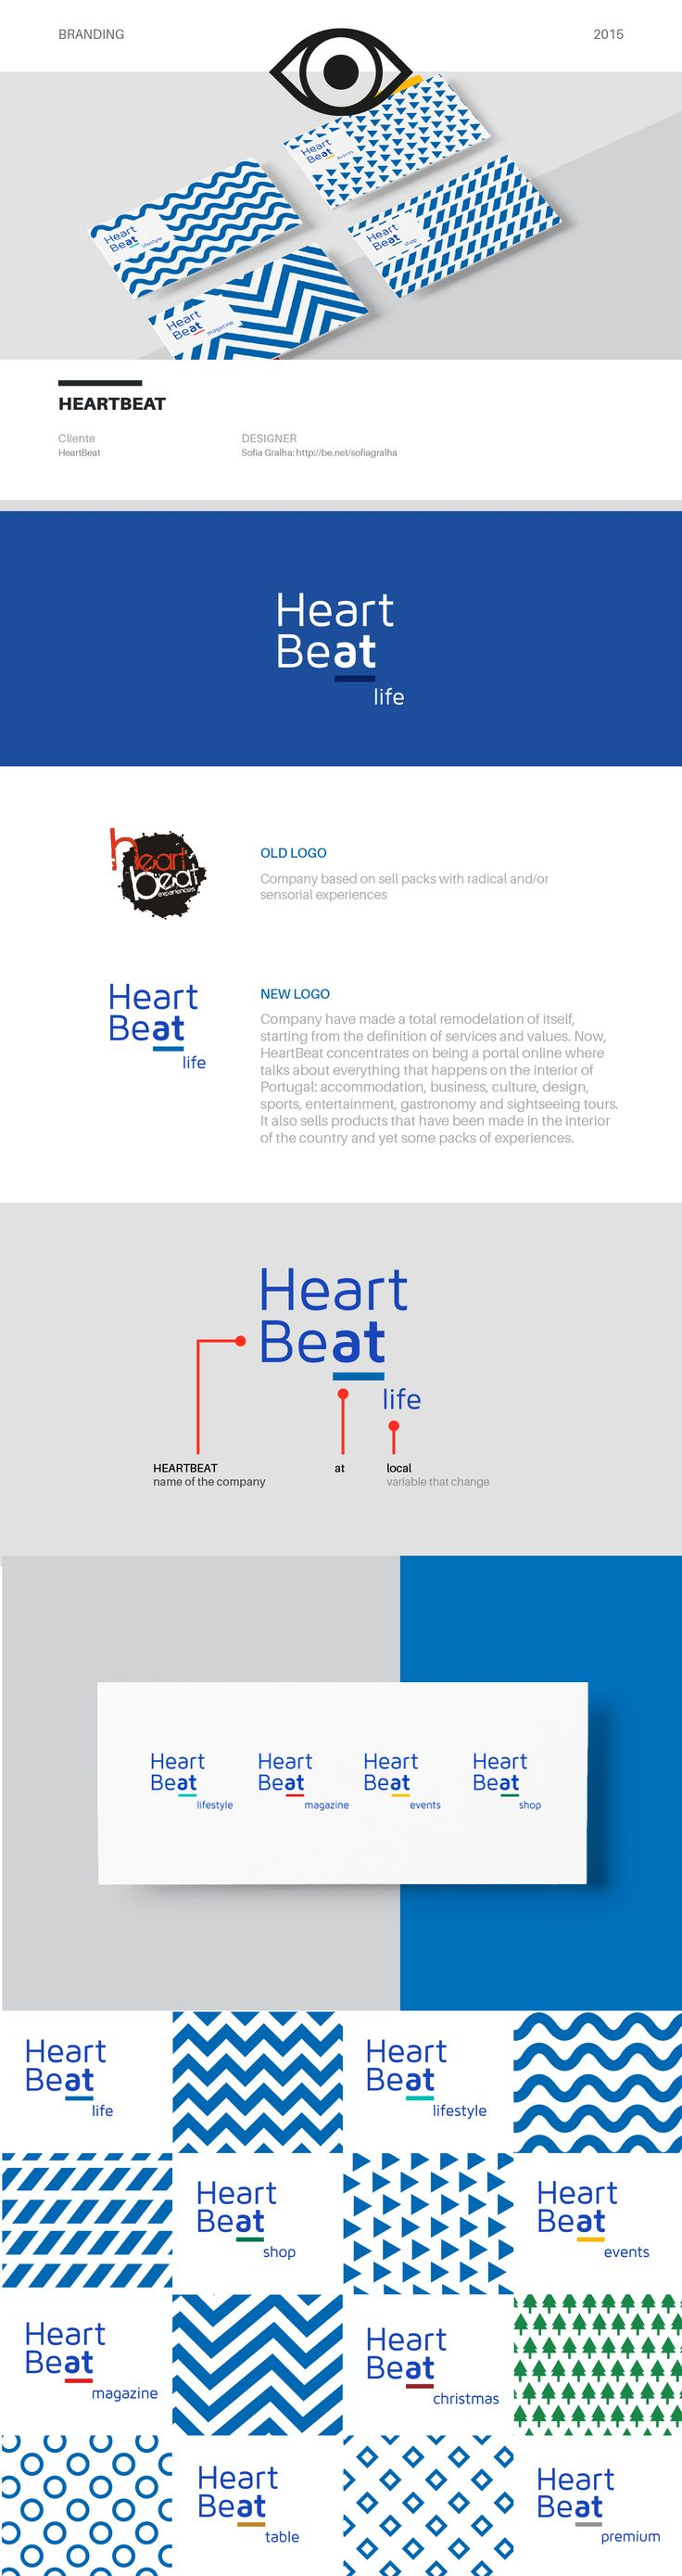 Total Rebranding of a company based on sell packs with radical and/or sensorial experiences. Company have made a total remodelation of itself, starting from the definition of services and values. Now, HeartBeat concentrates on being a portal online where …